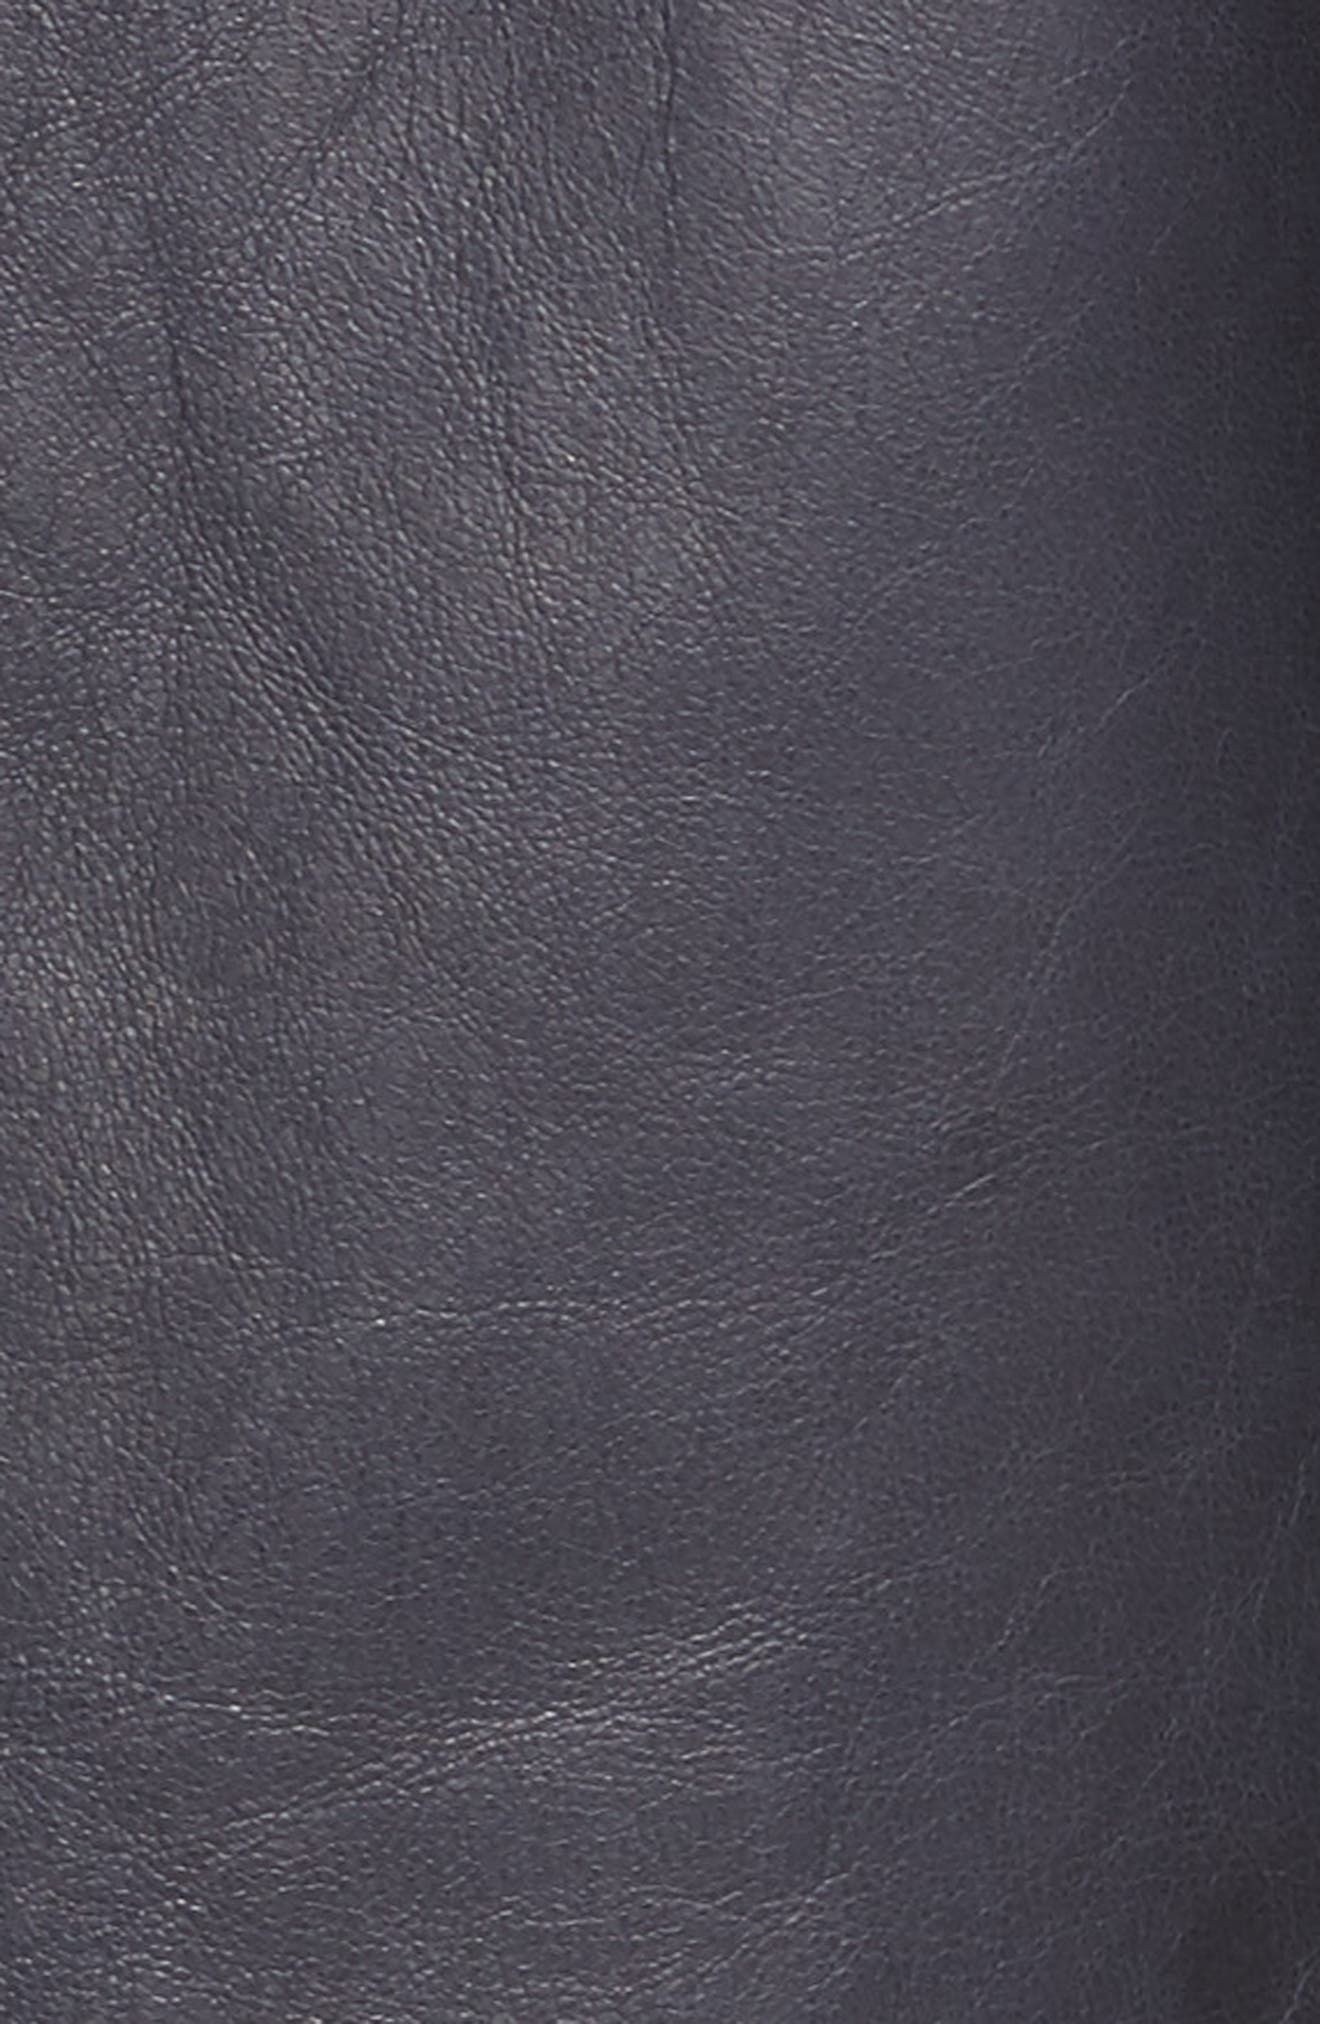 Clyde Lambskin Leather Jacket,                             Alternate thumbnail 6, color,                             479